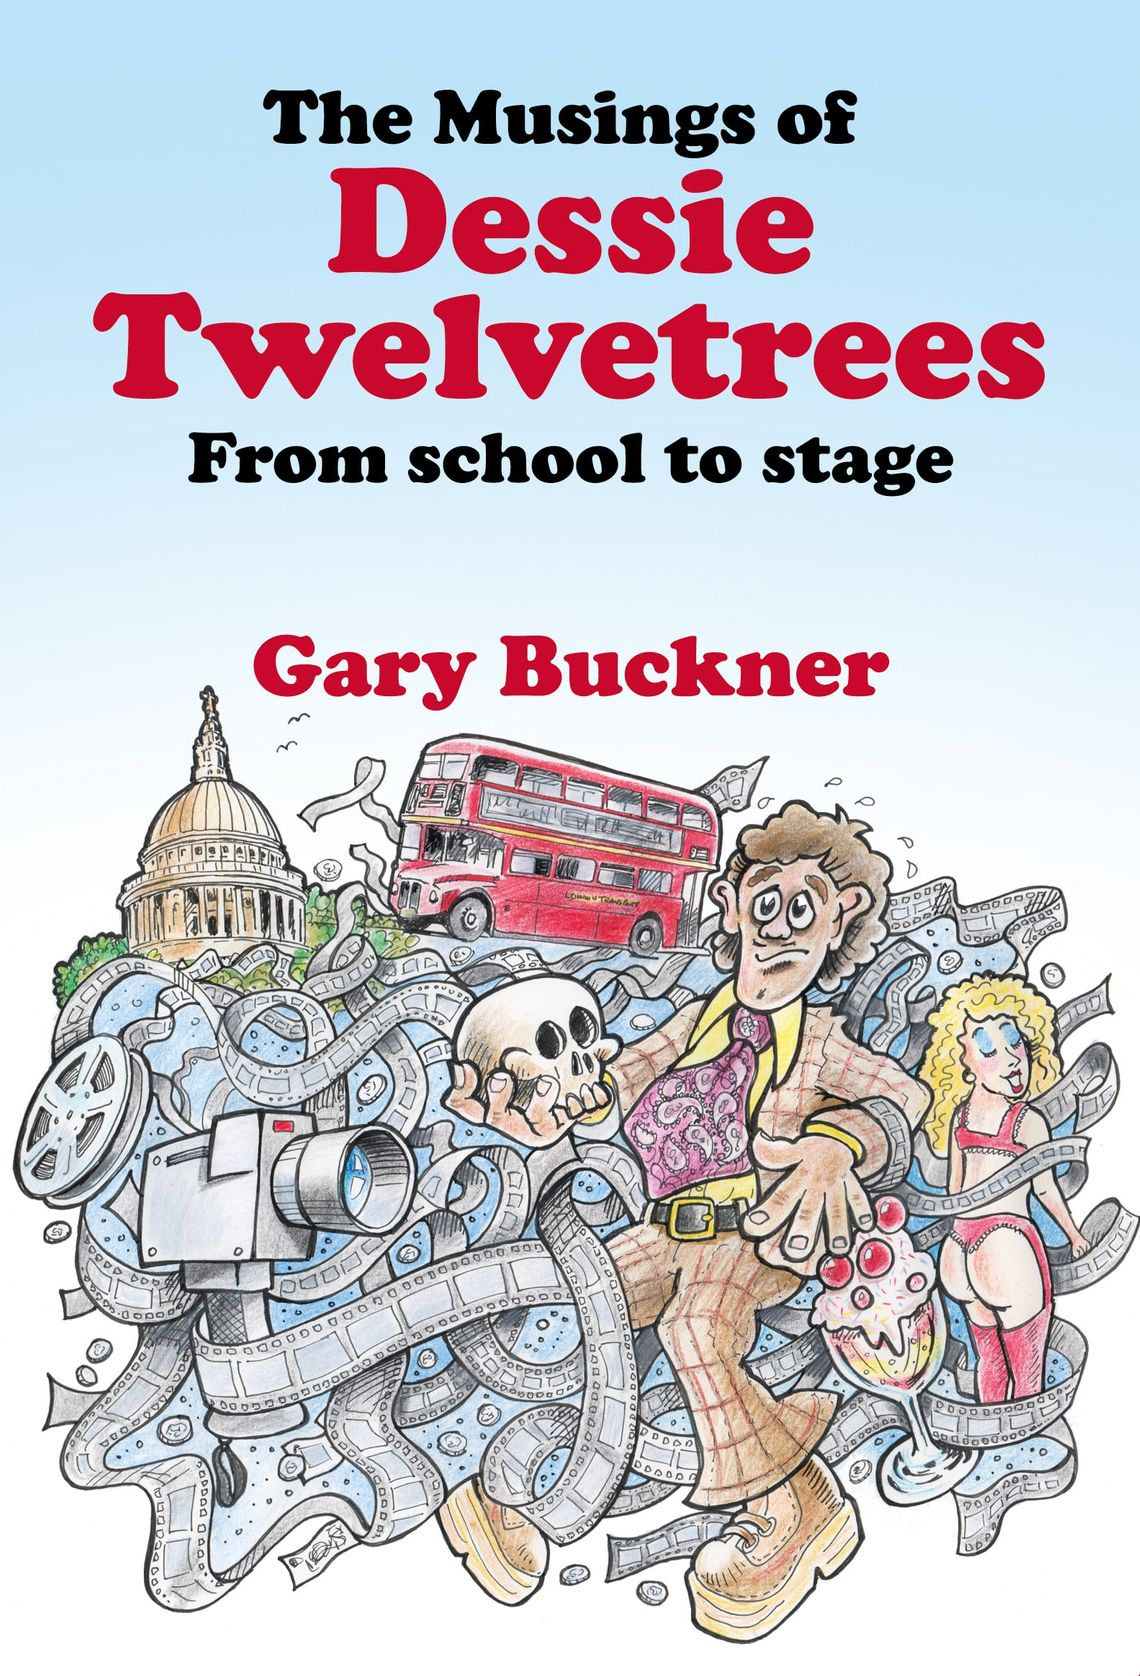 The Musings of Dessie Twelvetrees: from school to stage.